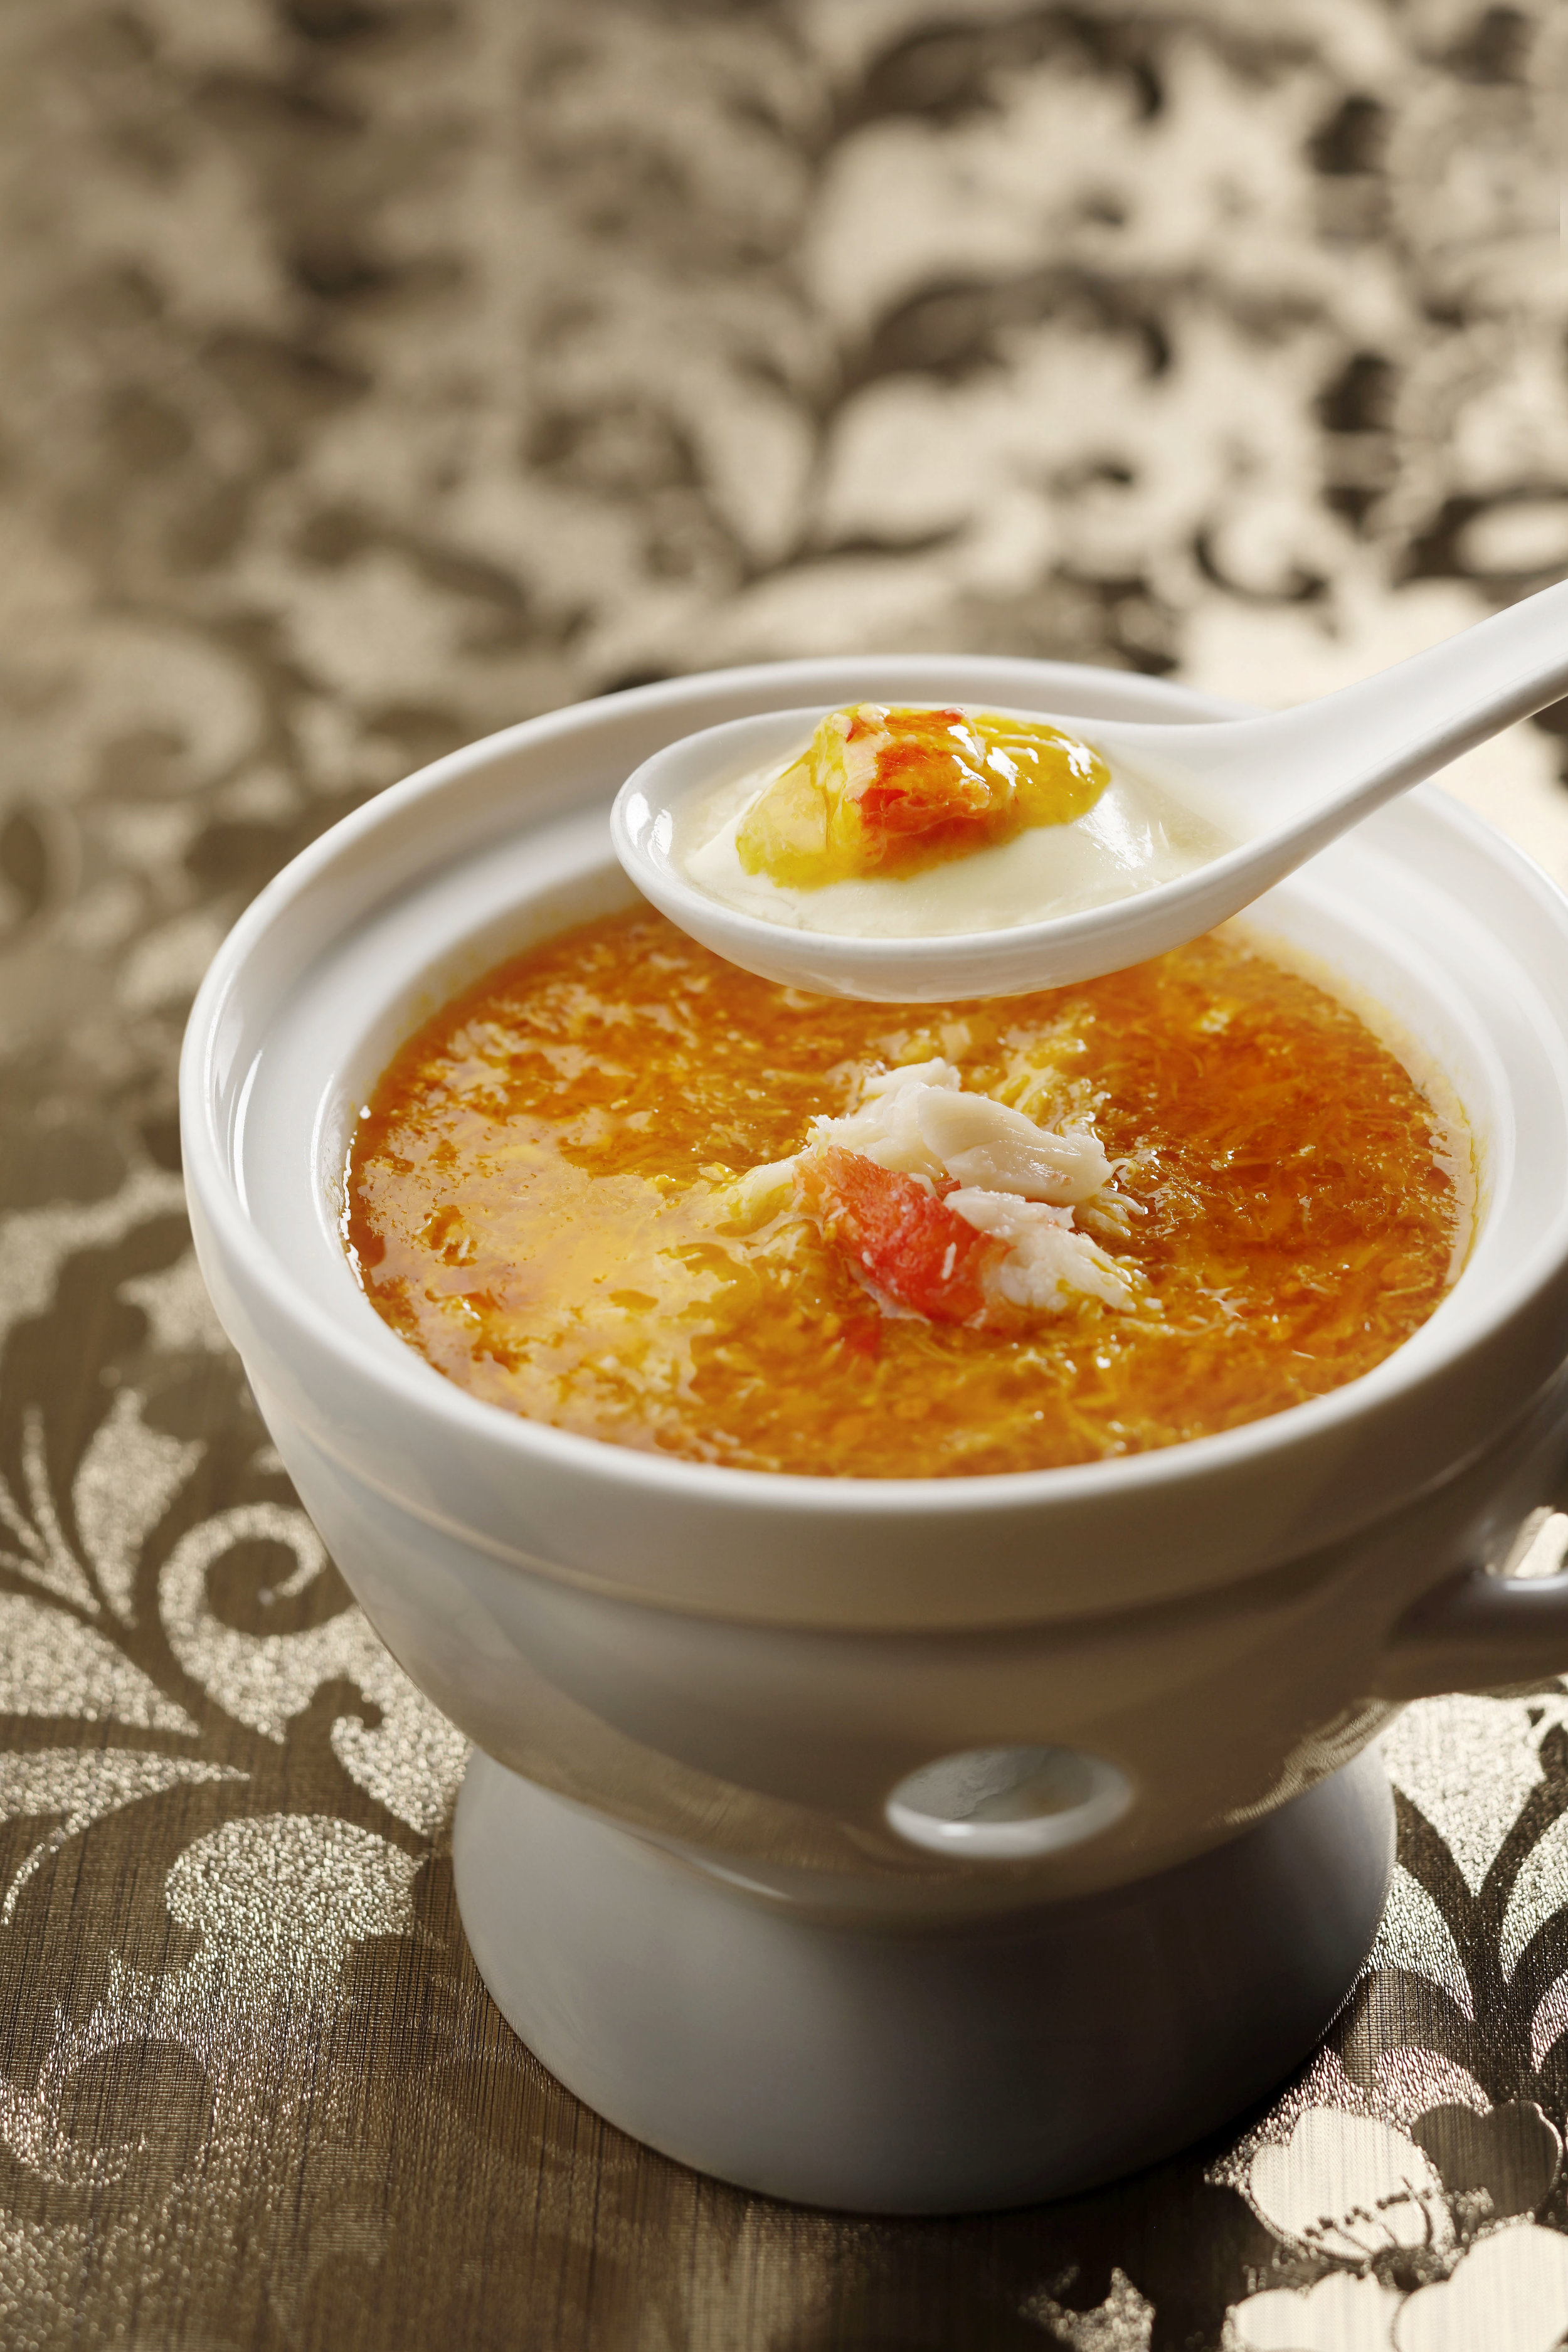 French Fois Gras Chawanmushi with Crab Meat Soup